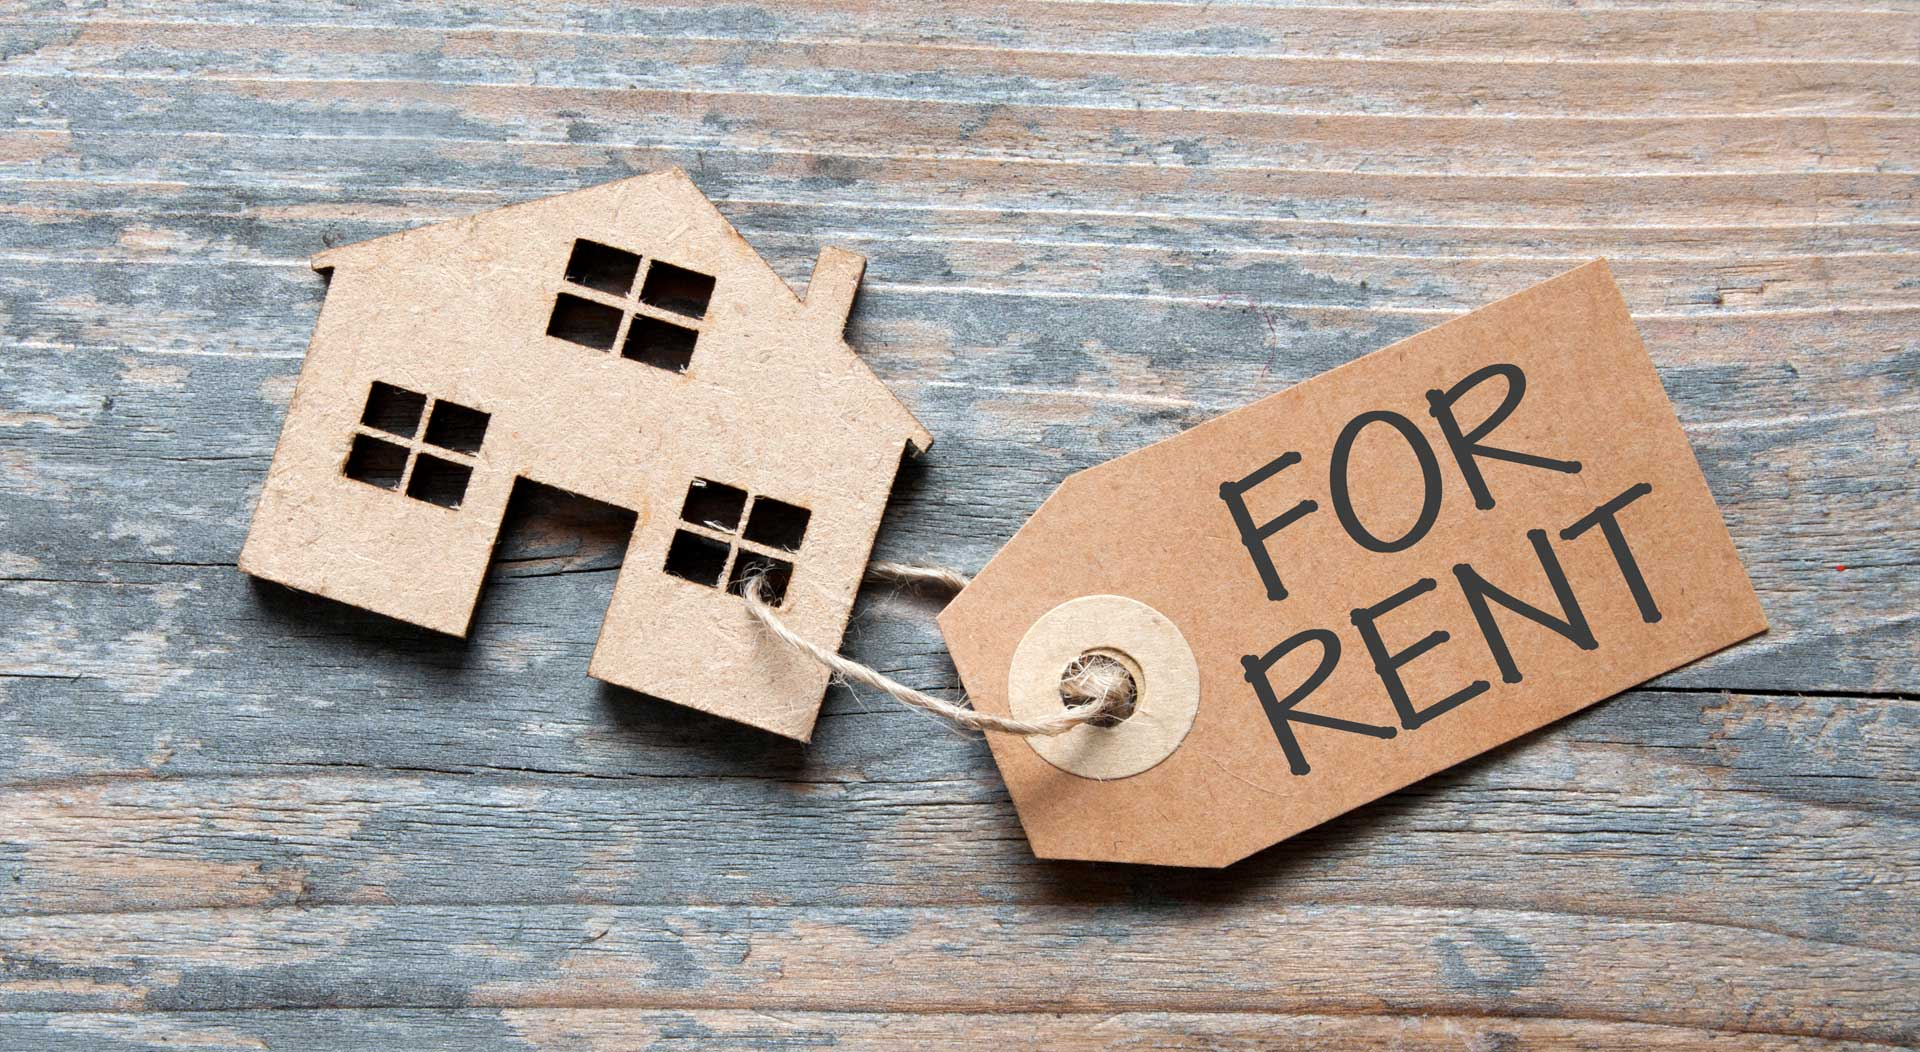 All County blog image by Sean Kelly - Rental demand heats up in the Fort Myers area